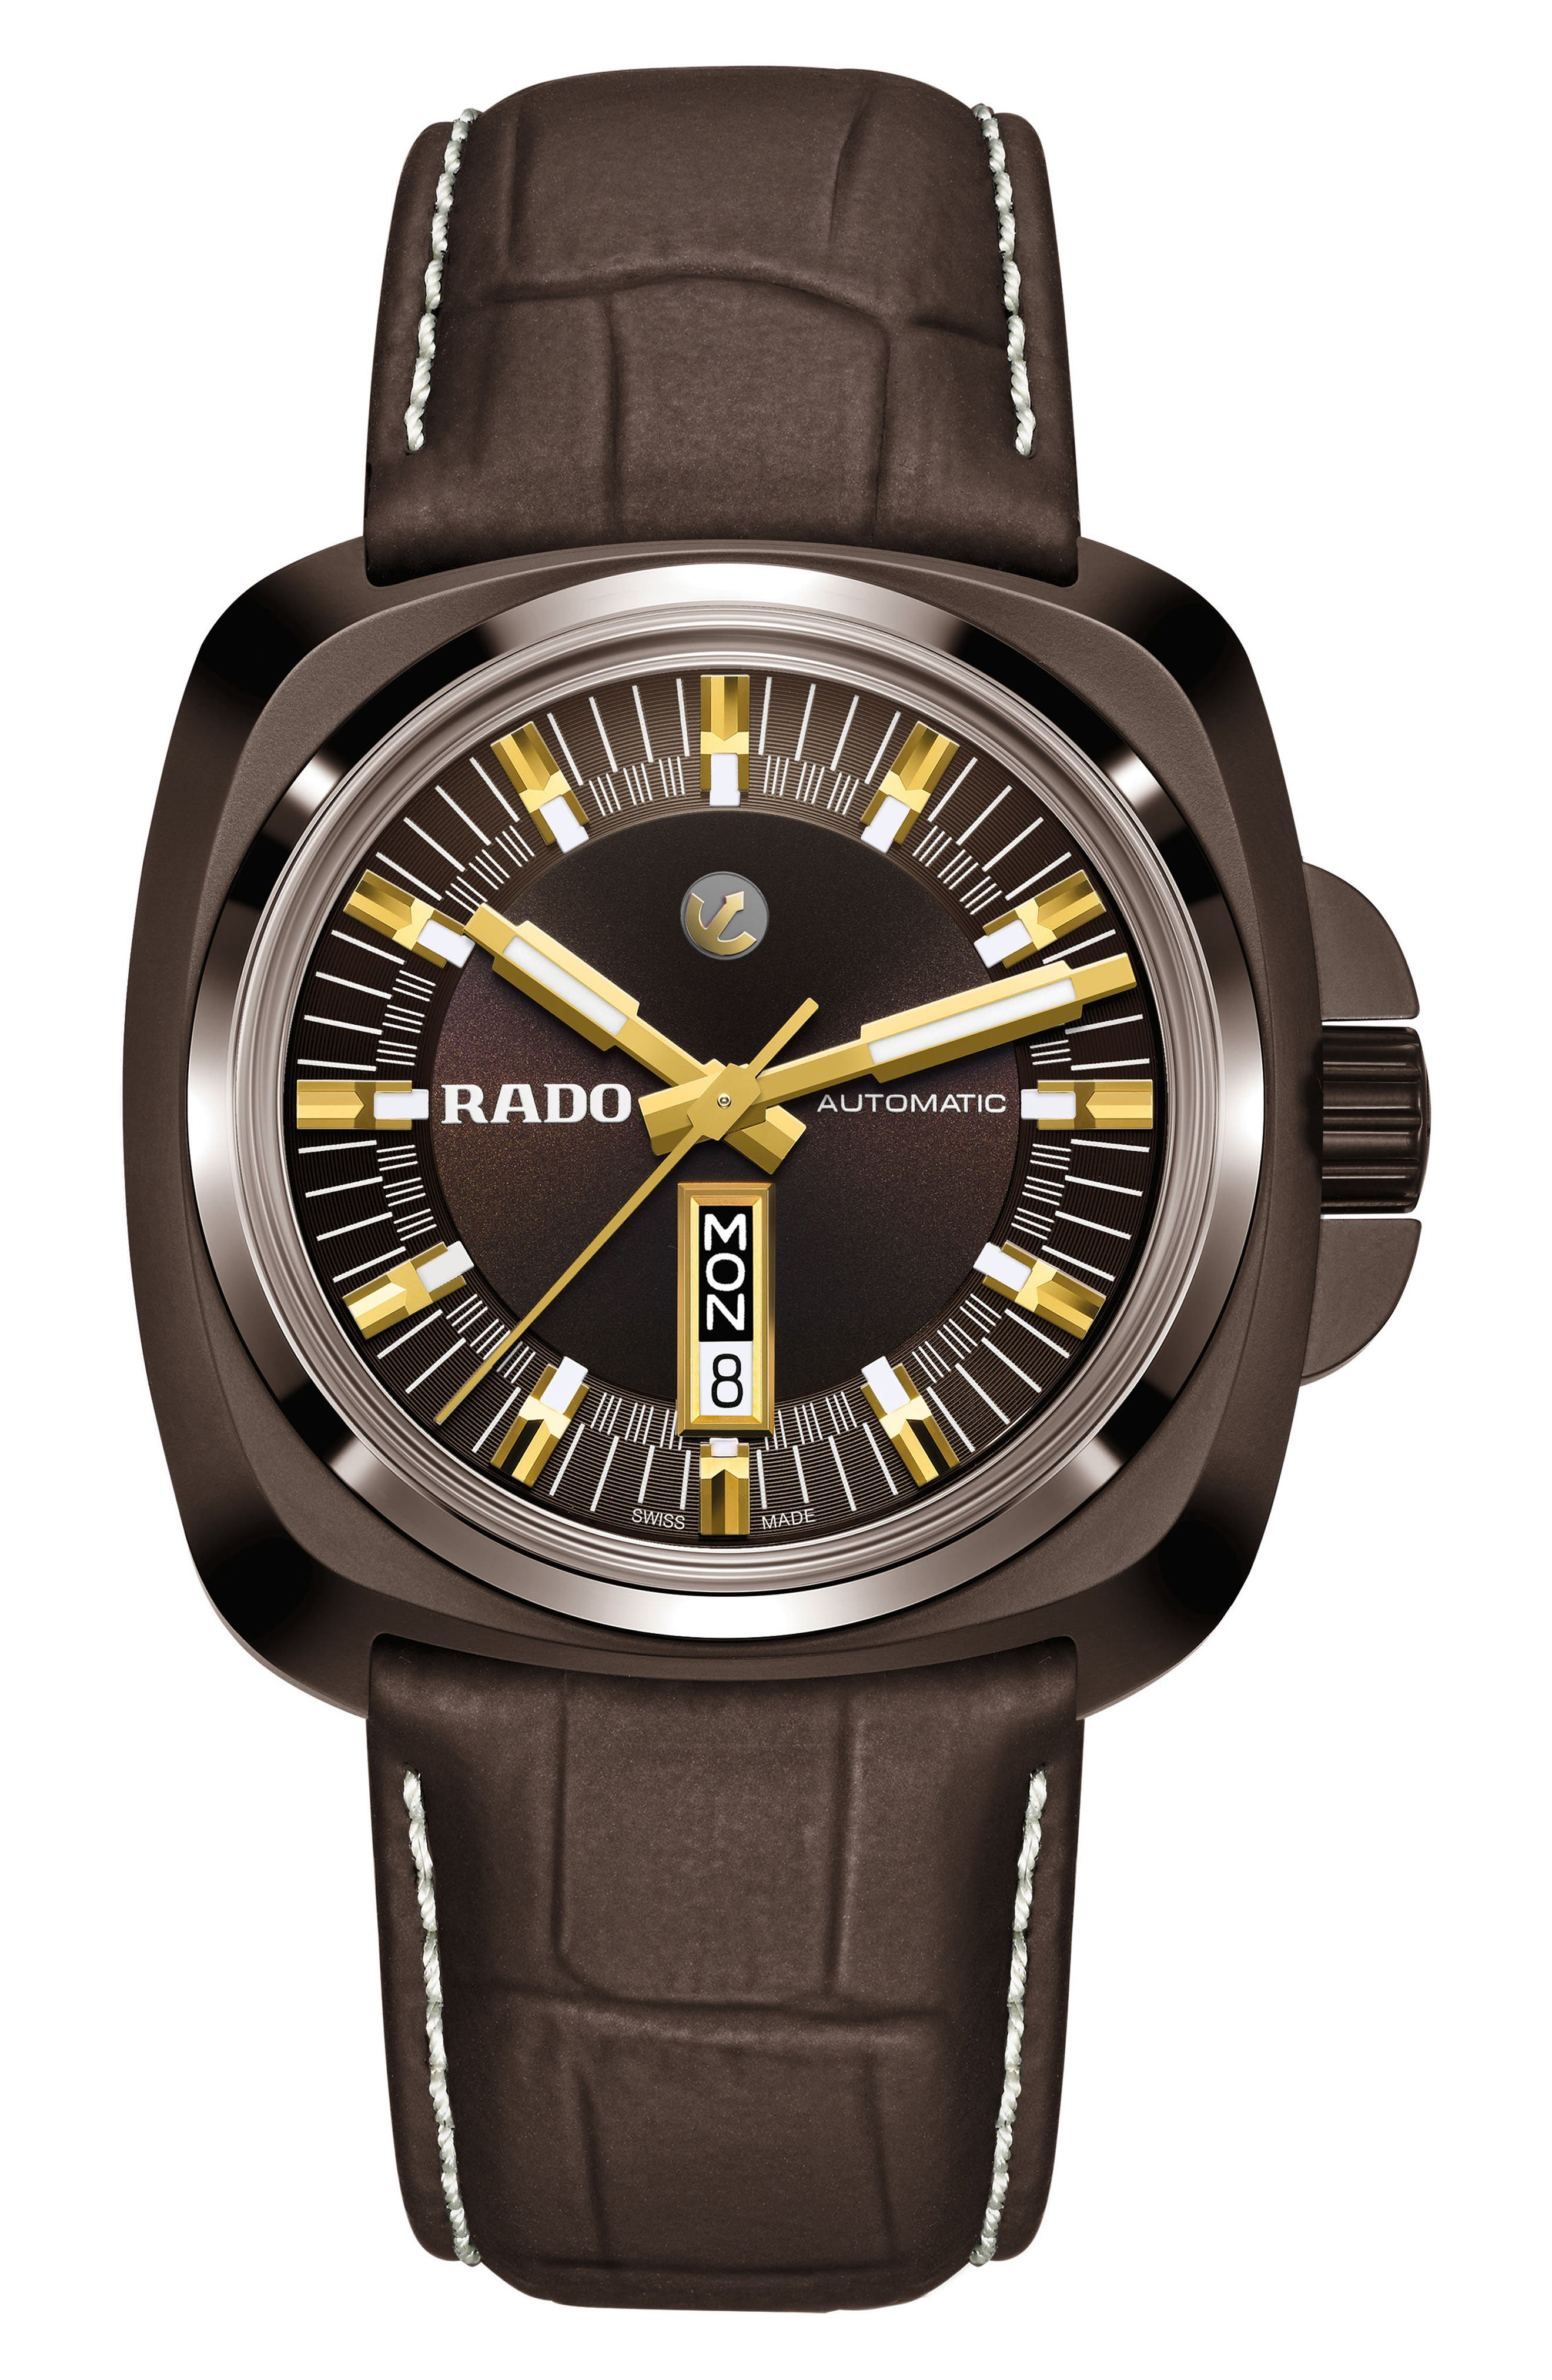 Main Image - RADO HyperChrome 1616 Automatic Leather Strap Watch, 46mm